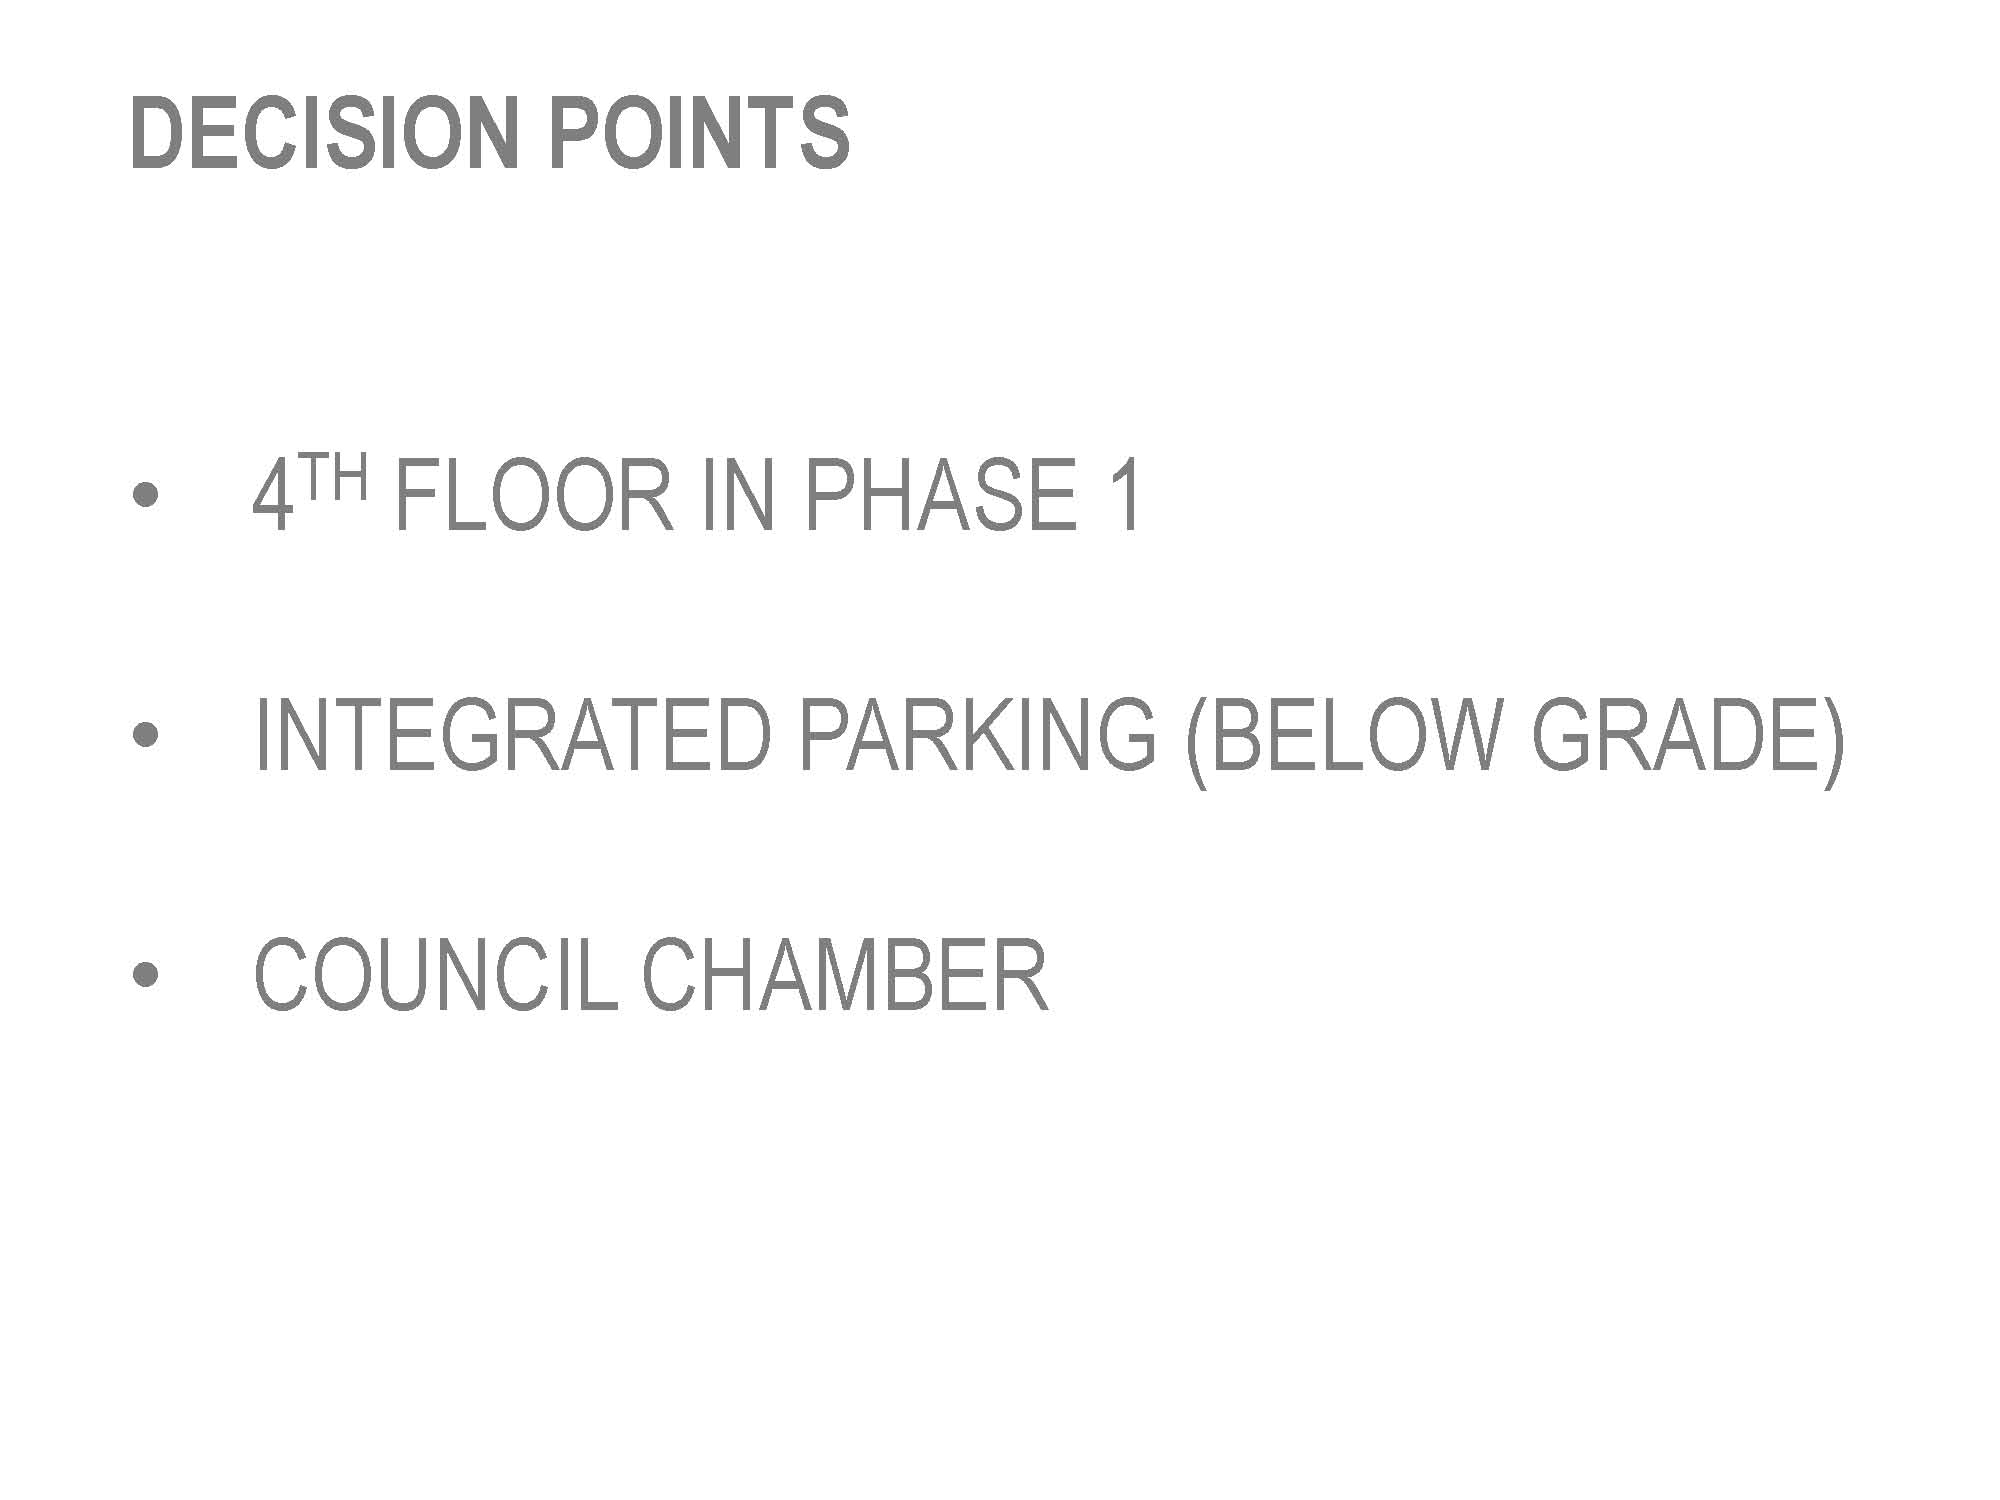 2014-10-27_CouncilDecisions_Finalweb_Page_18.jpg